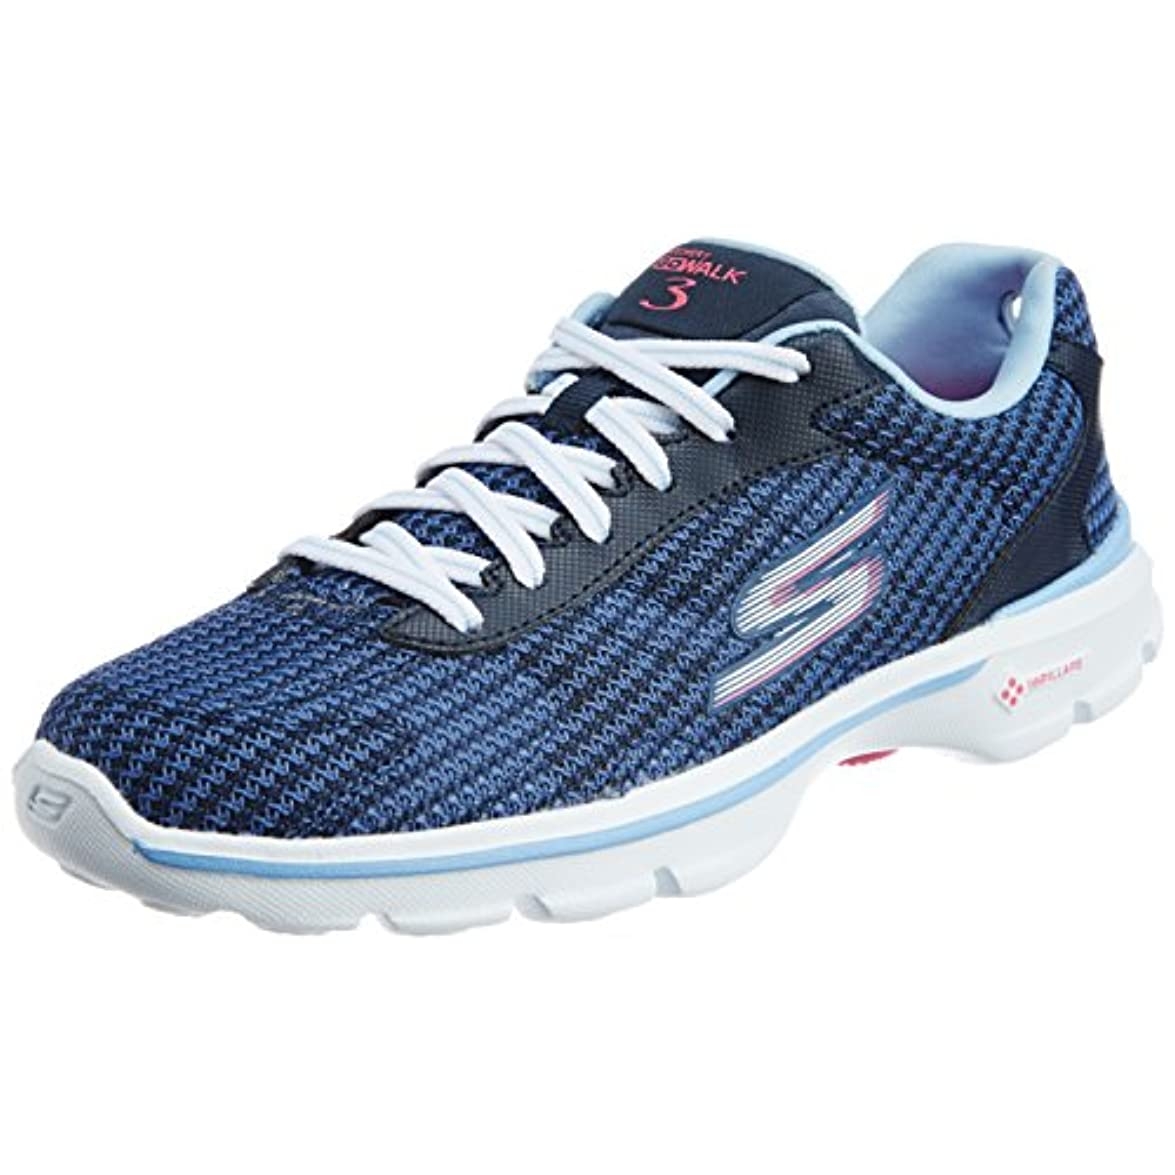 Skechers Go Walk 3 Fit Knit Scarpe Da Ginnastica Donna